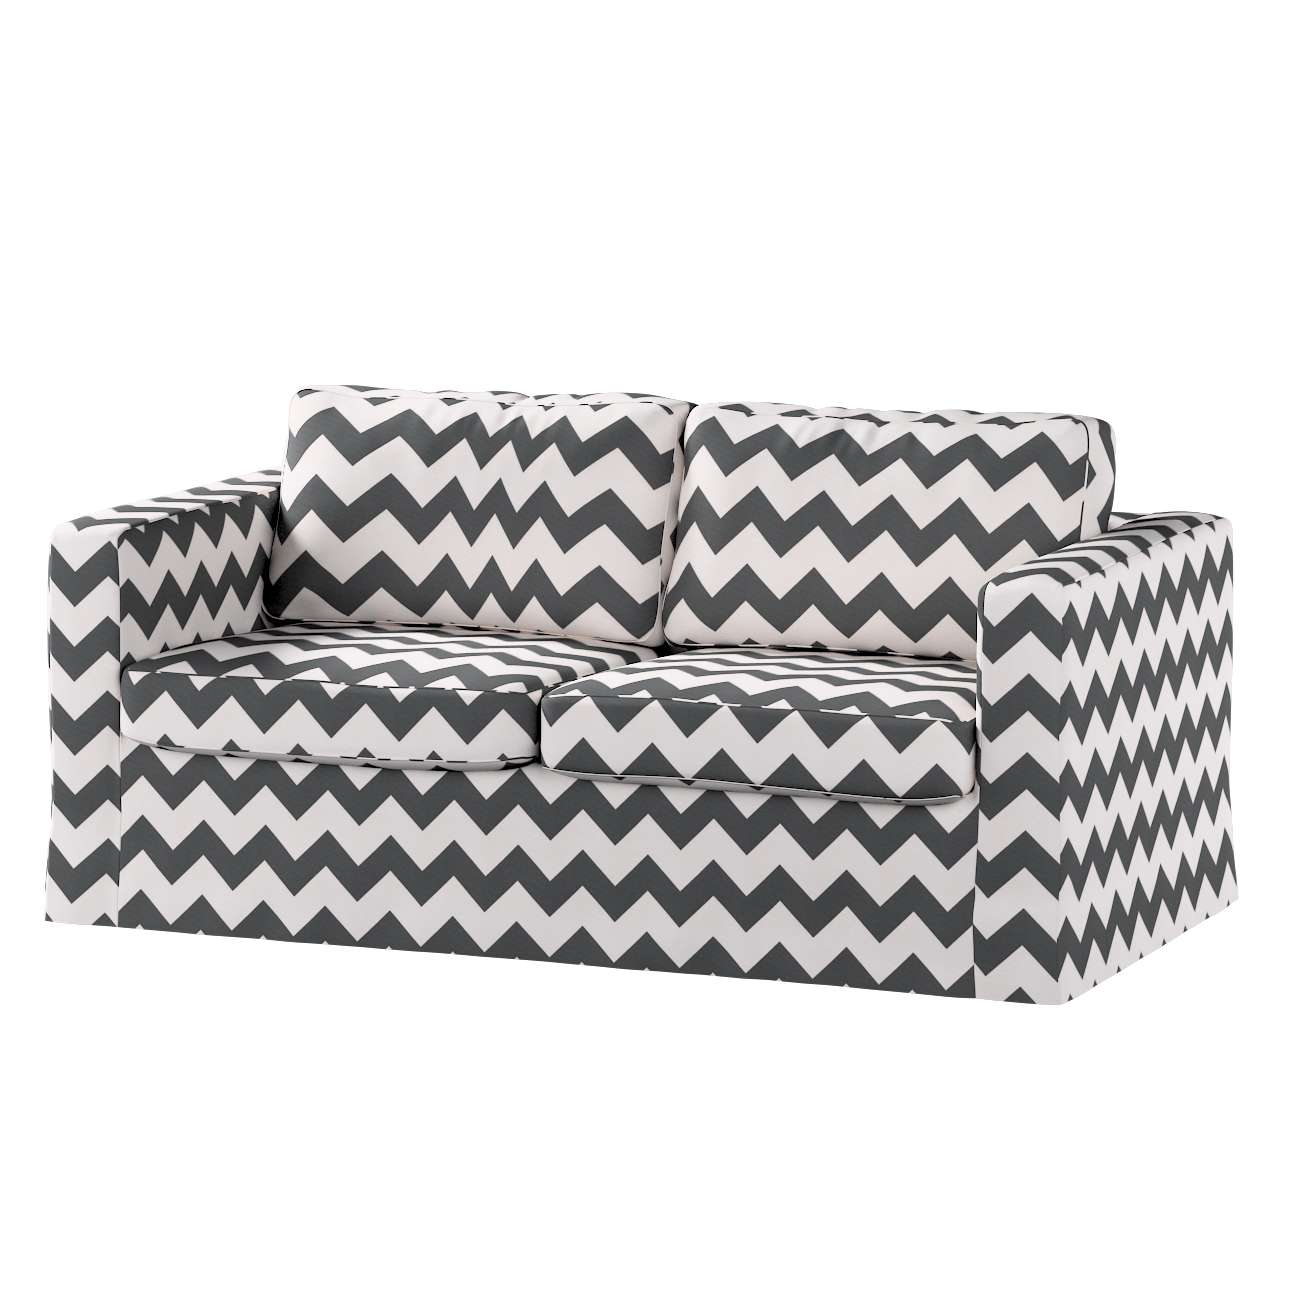 Floor length Karlstad 2-seater sofa cover in collection Comics/Geometrical, fabric: 135-02